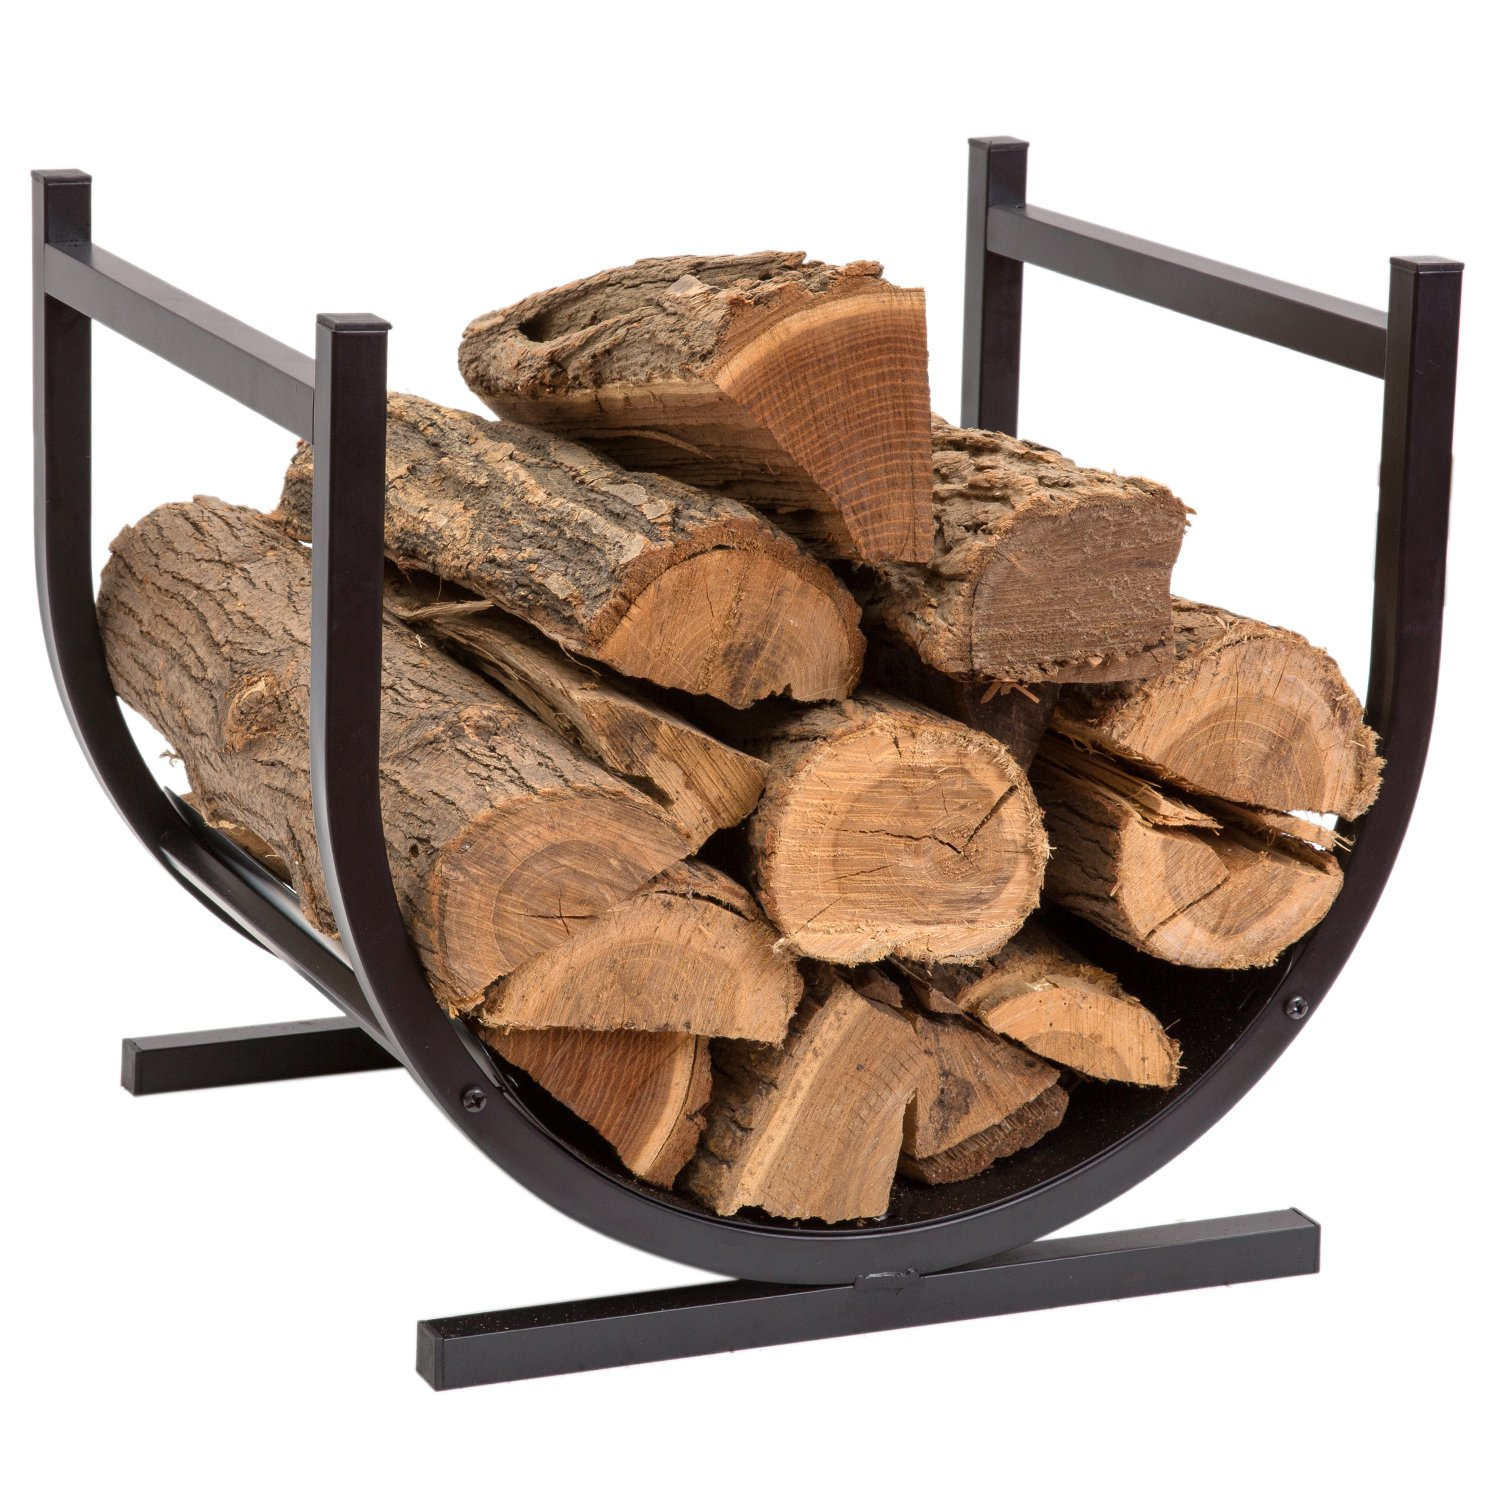 B07DRB78LB DOEWORKS Small Decorative Indoor/Outdoor Firewood Racks Fireside Log Rack, Black 812CyjLuNWL